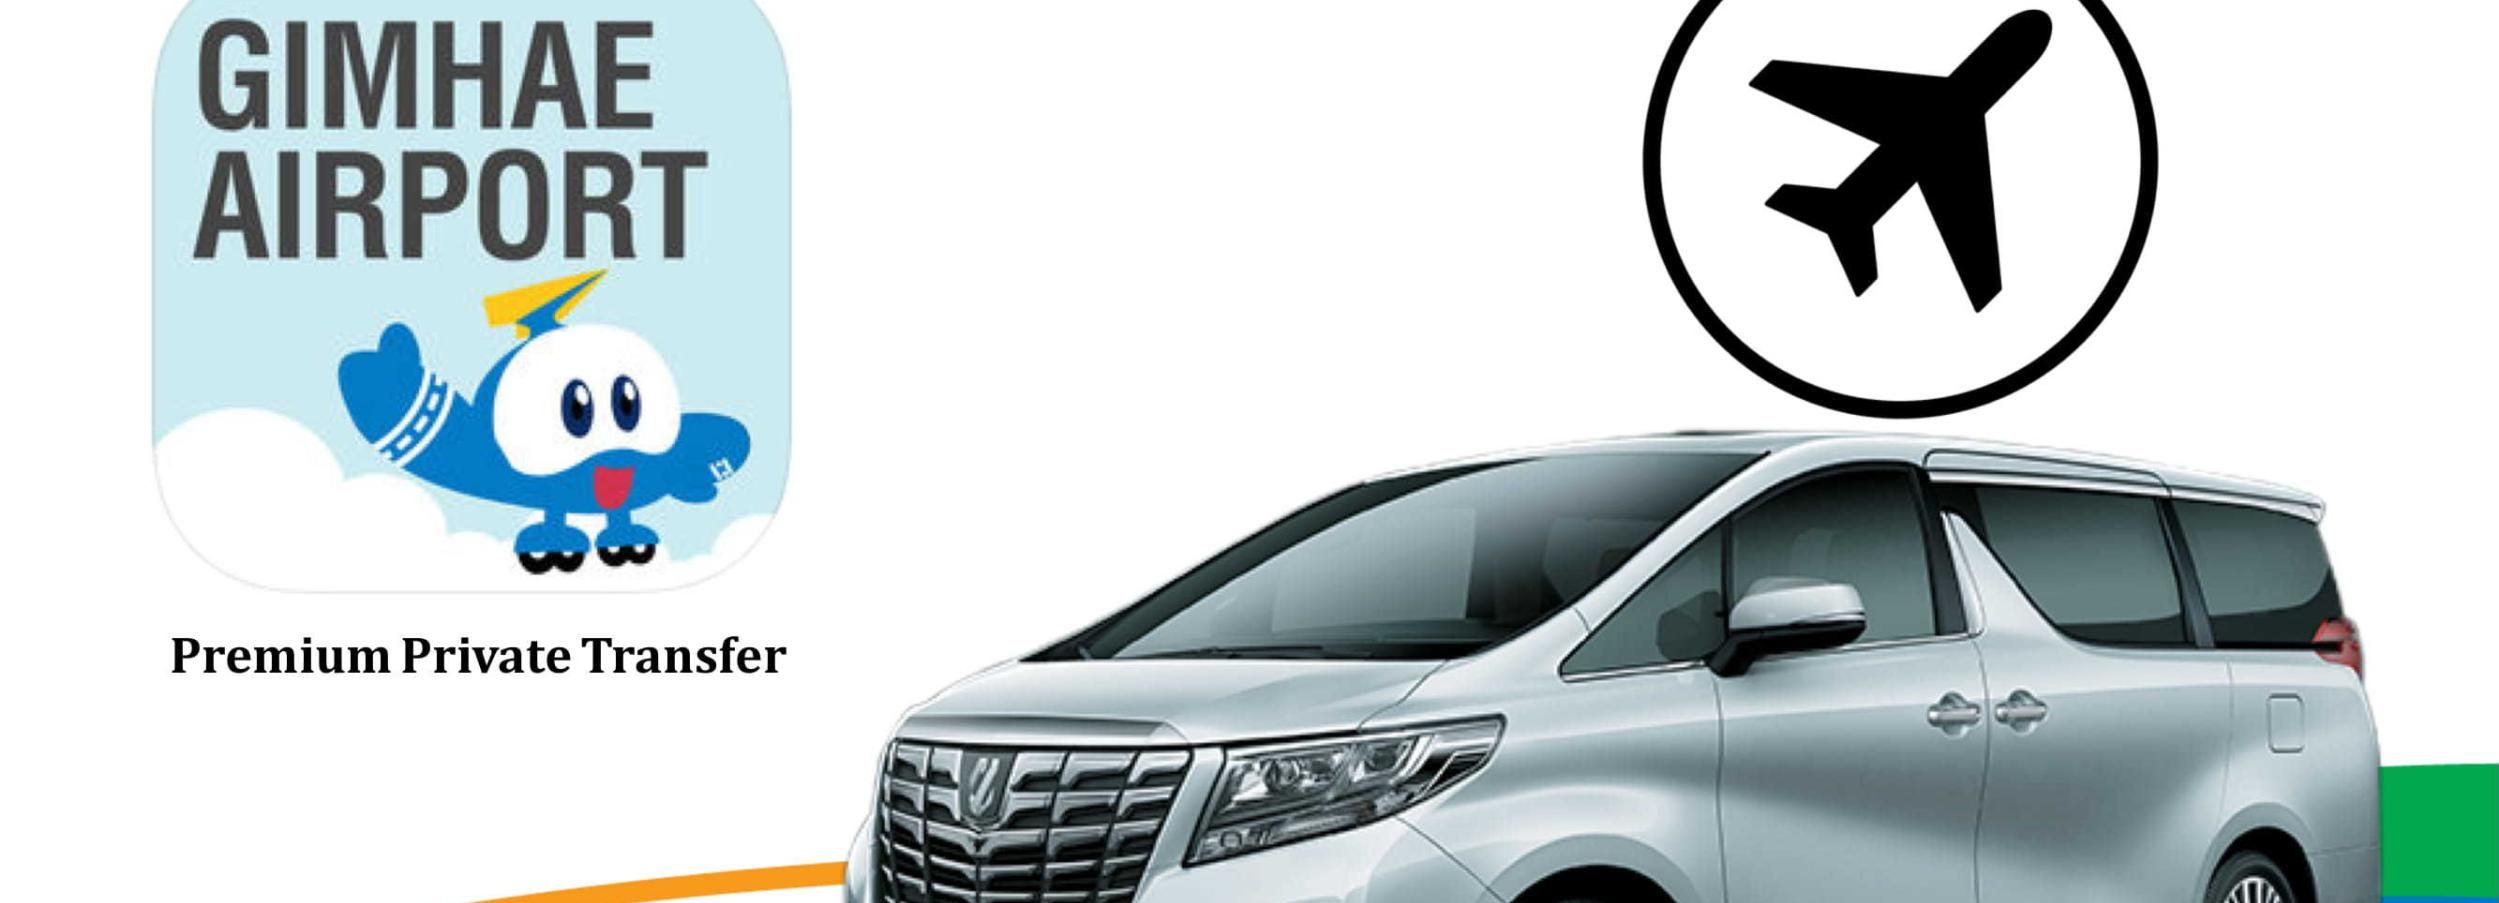 Private Premium Transfer Between Gimhae Airport & Busan City